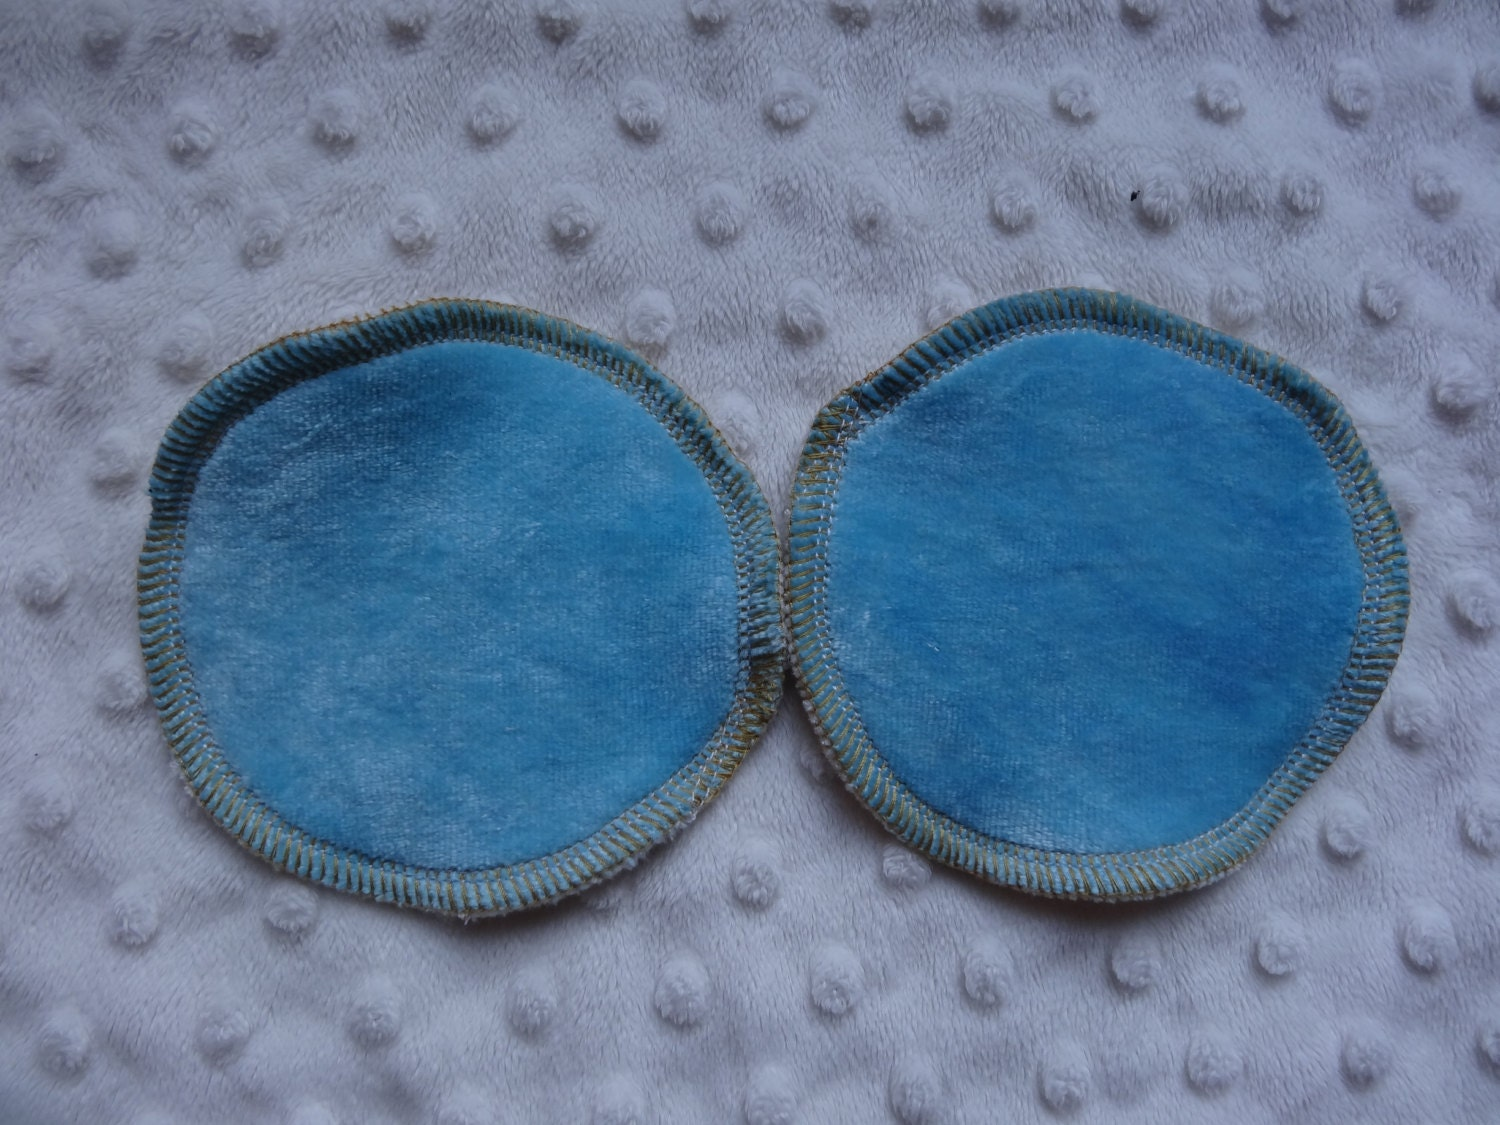 Washable Breast Pads  Blue bamboo velour  regular or large size  washable and reusable  bamboo pads